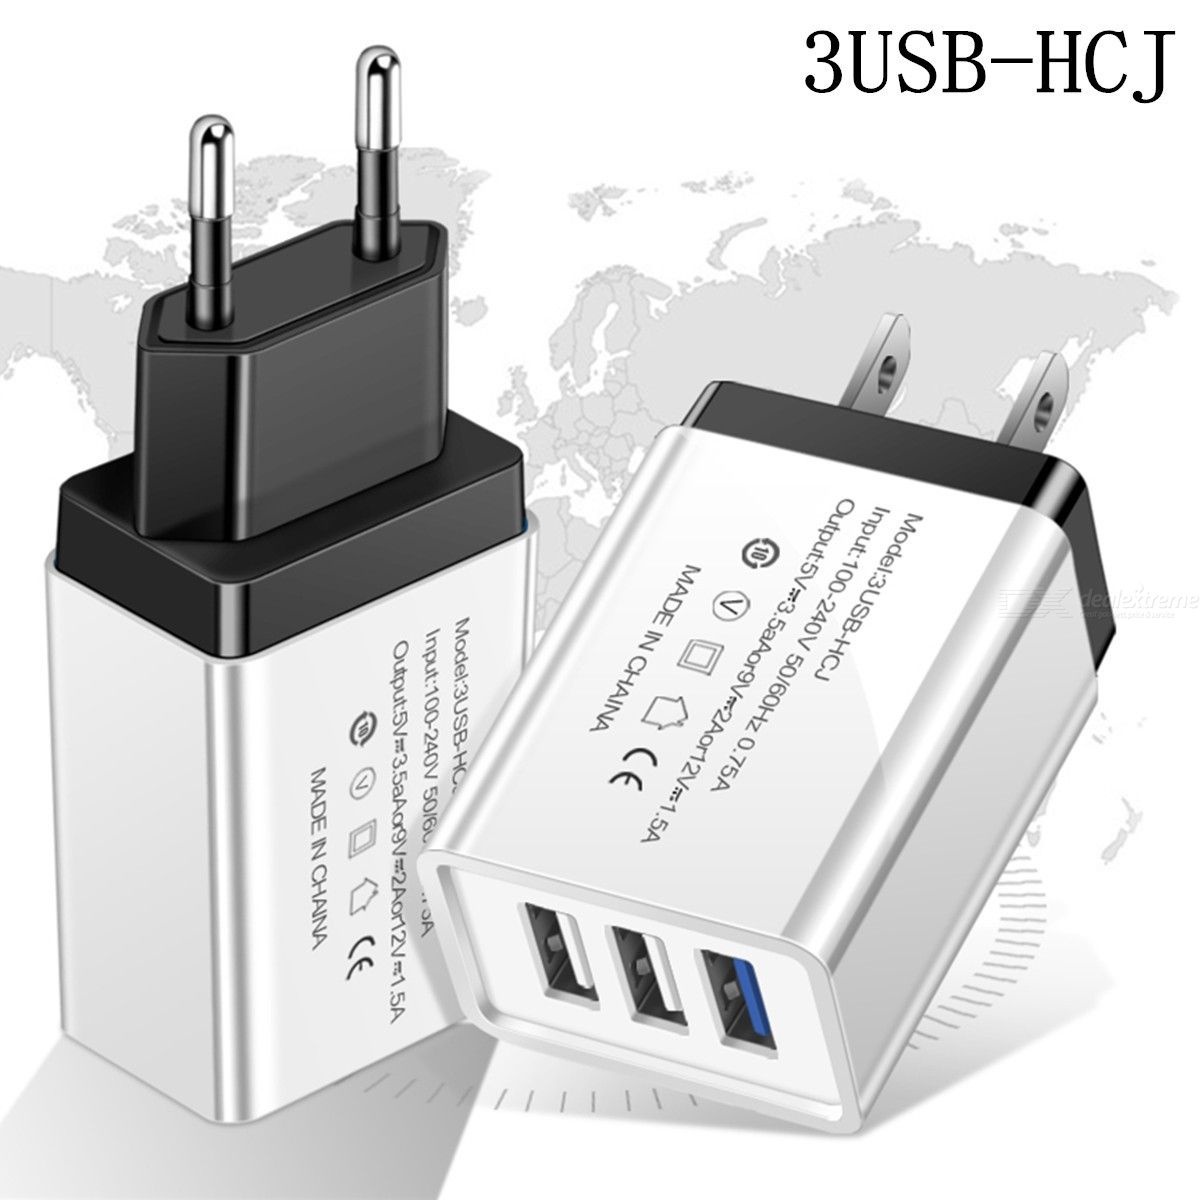 Dealextreme / 3 USB Phone Wall Charger Home Digital Smart Tablet universal Travel Charger EU/ US Standard AC100-240